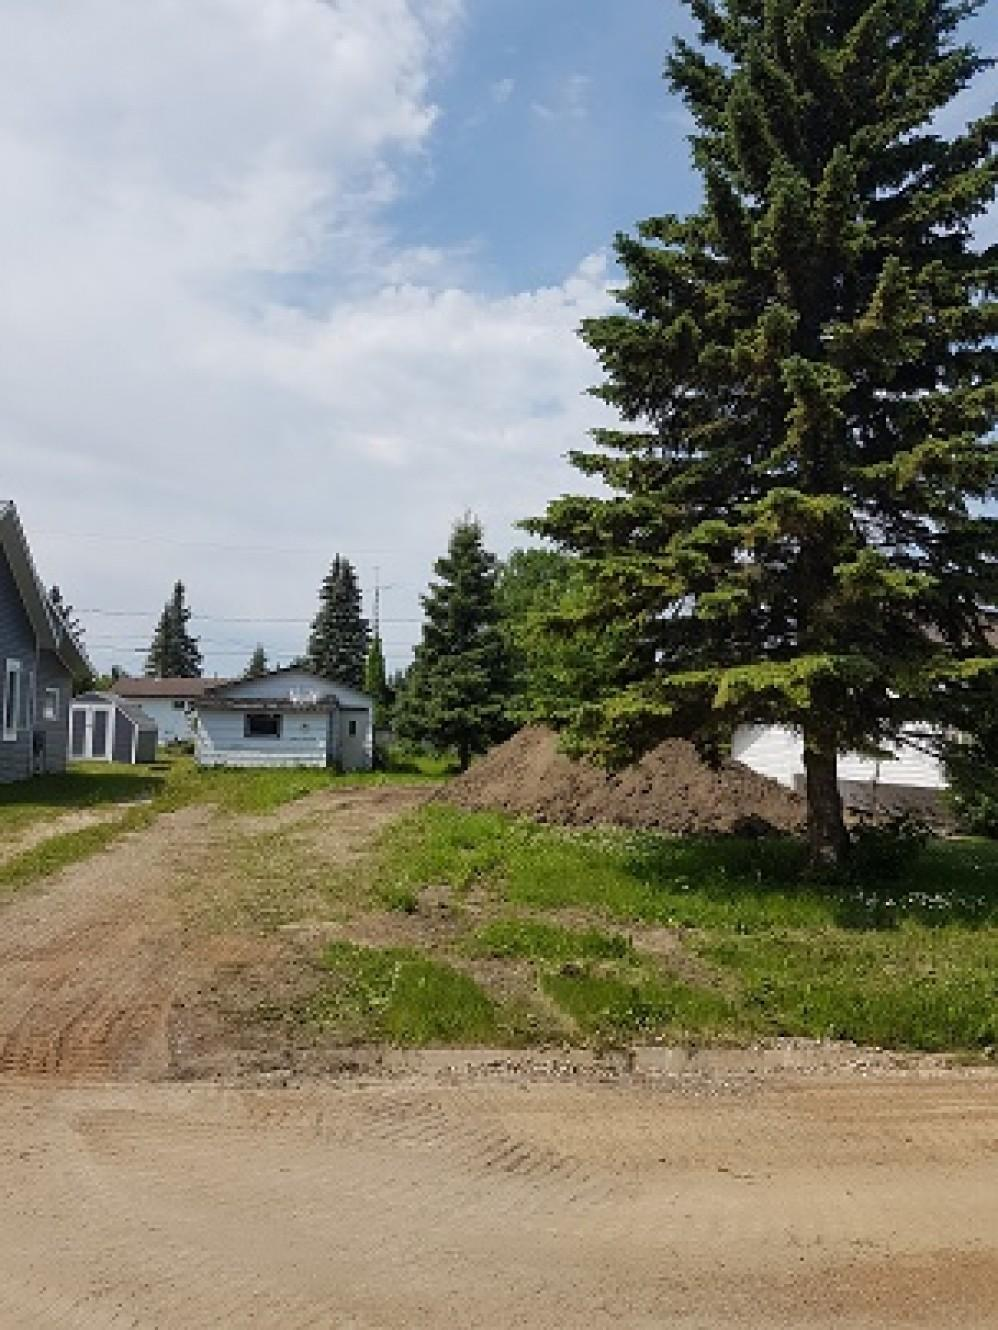 205 Second Street West - 50 X 120 - Residential Lot C/W Detached Garage - Serviced - Must build before title transfer